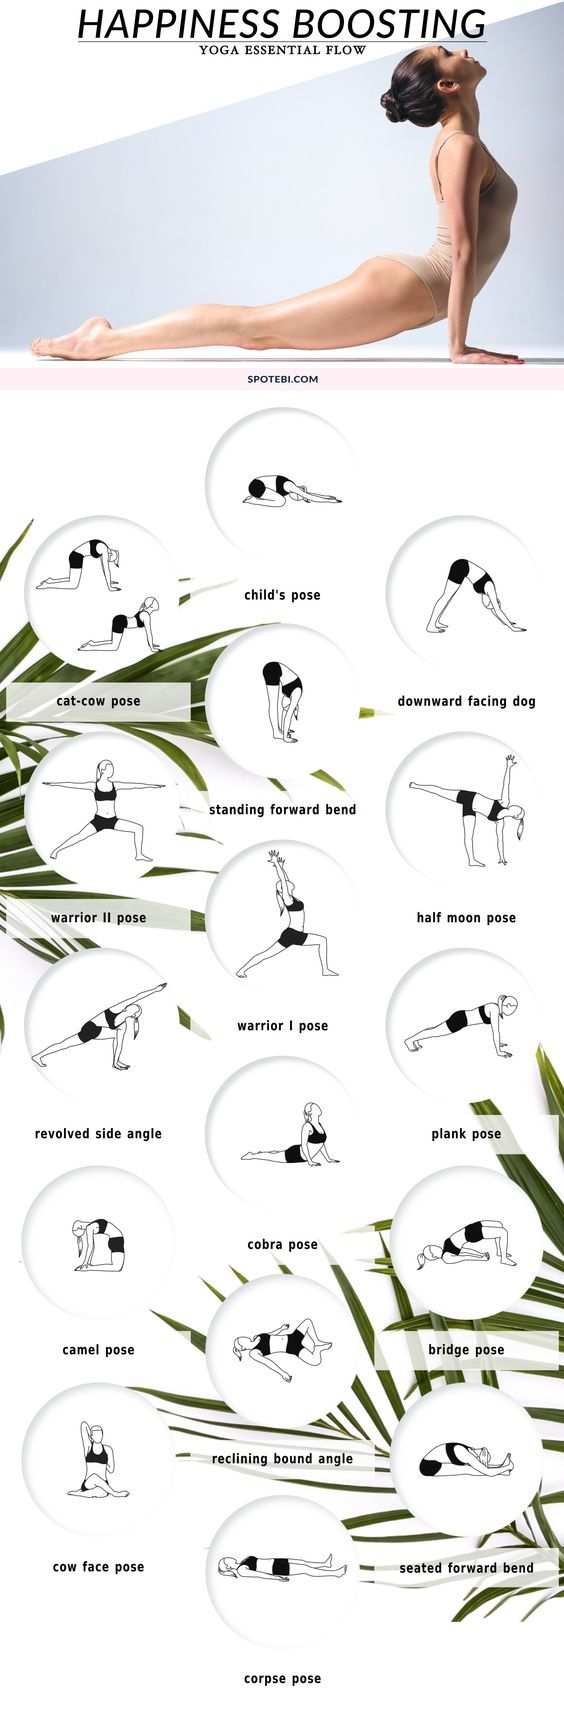 Do you need a quick boost of happiness? If so, hop on the mat and follow this 20-minute yoga essential flow. Forget your troubles, boost your energy and create a lighter, happier you! http://www.spotebi.com/yoga-sequences/happiness-boosting/: